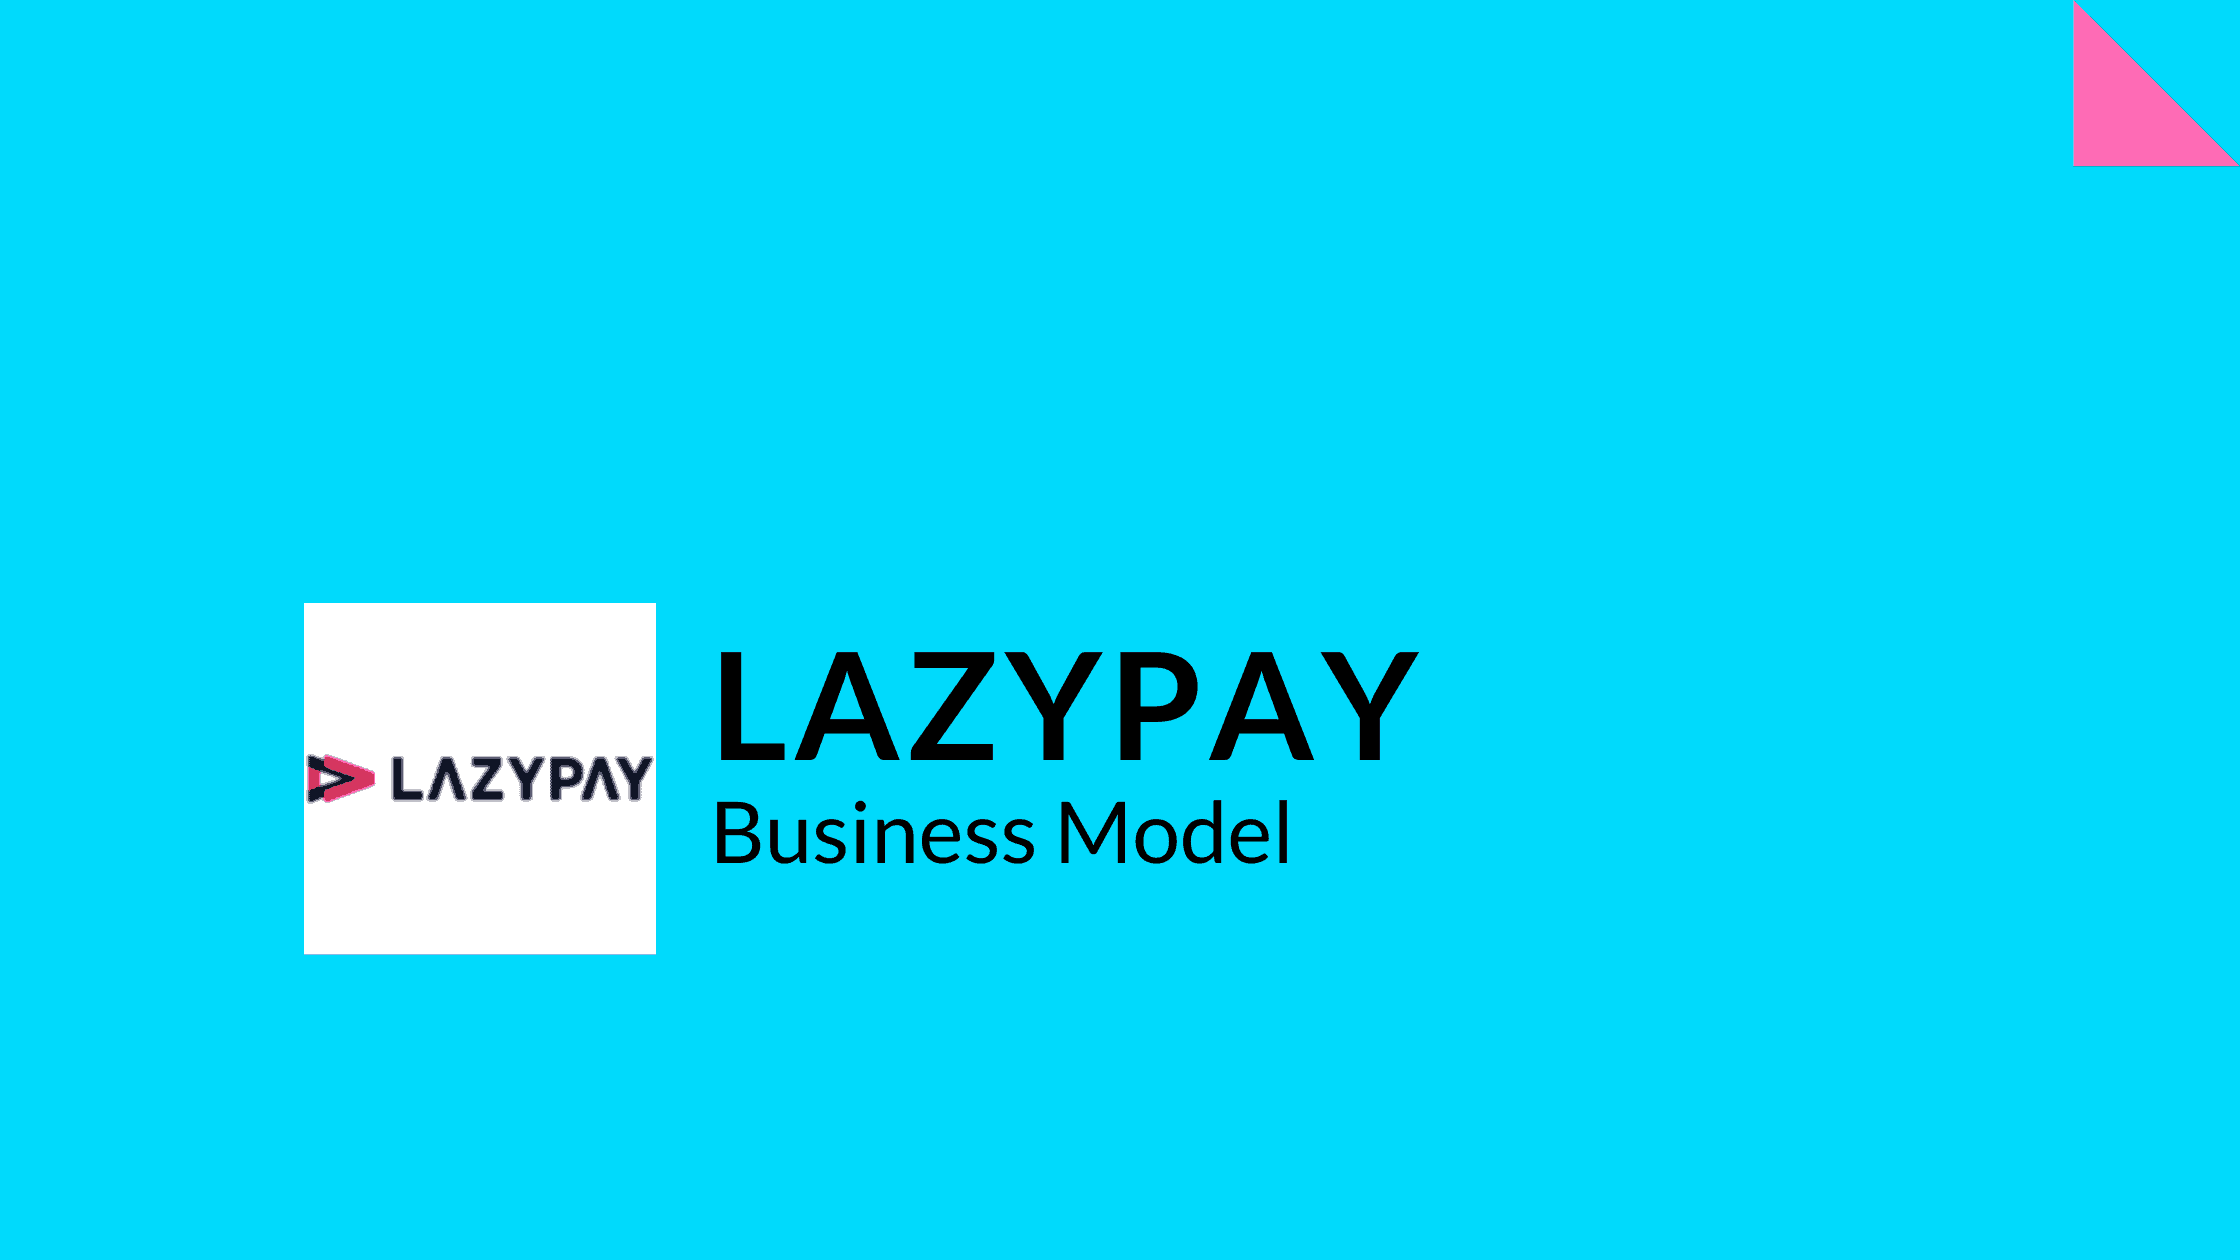 Lazypay's - Business Model Featured Image